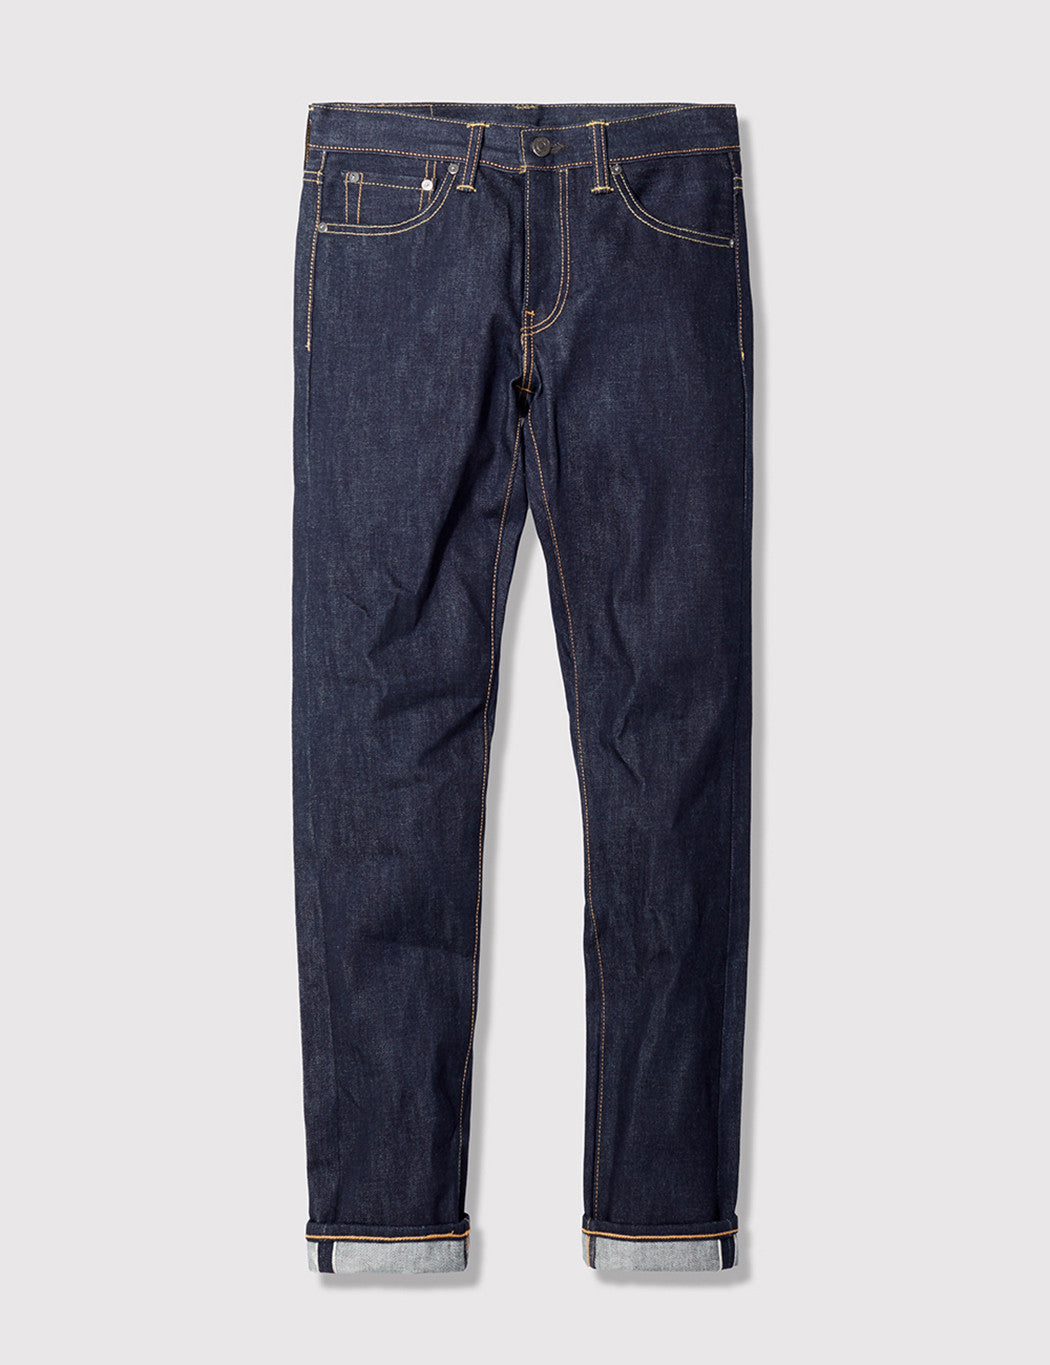 Levis 511 Selvedge Raw Jeans (Slim) - Eternal Day